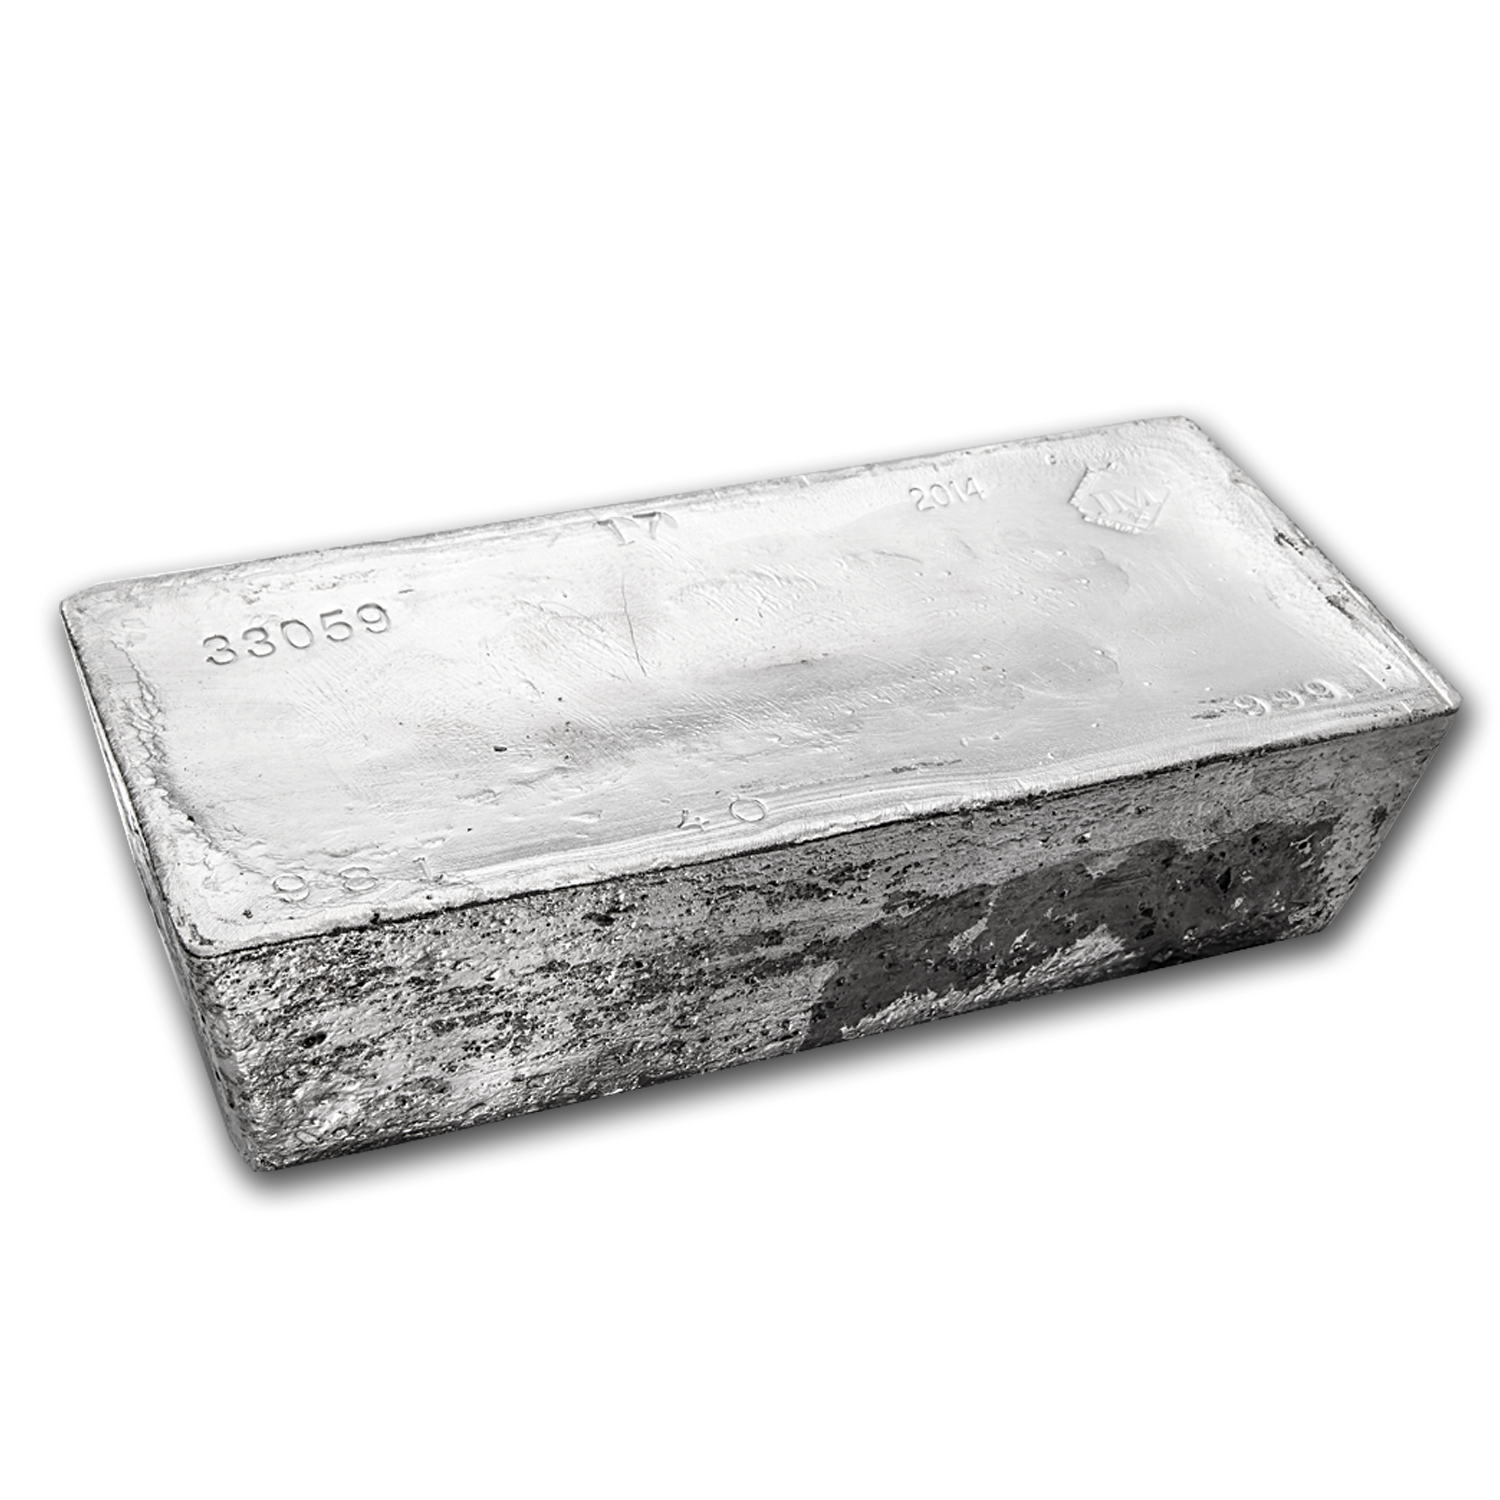 1000.00 oz Silver Bars - Johnson Matthey